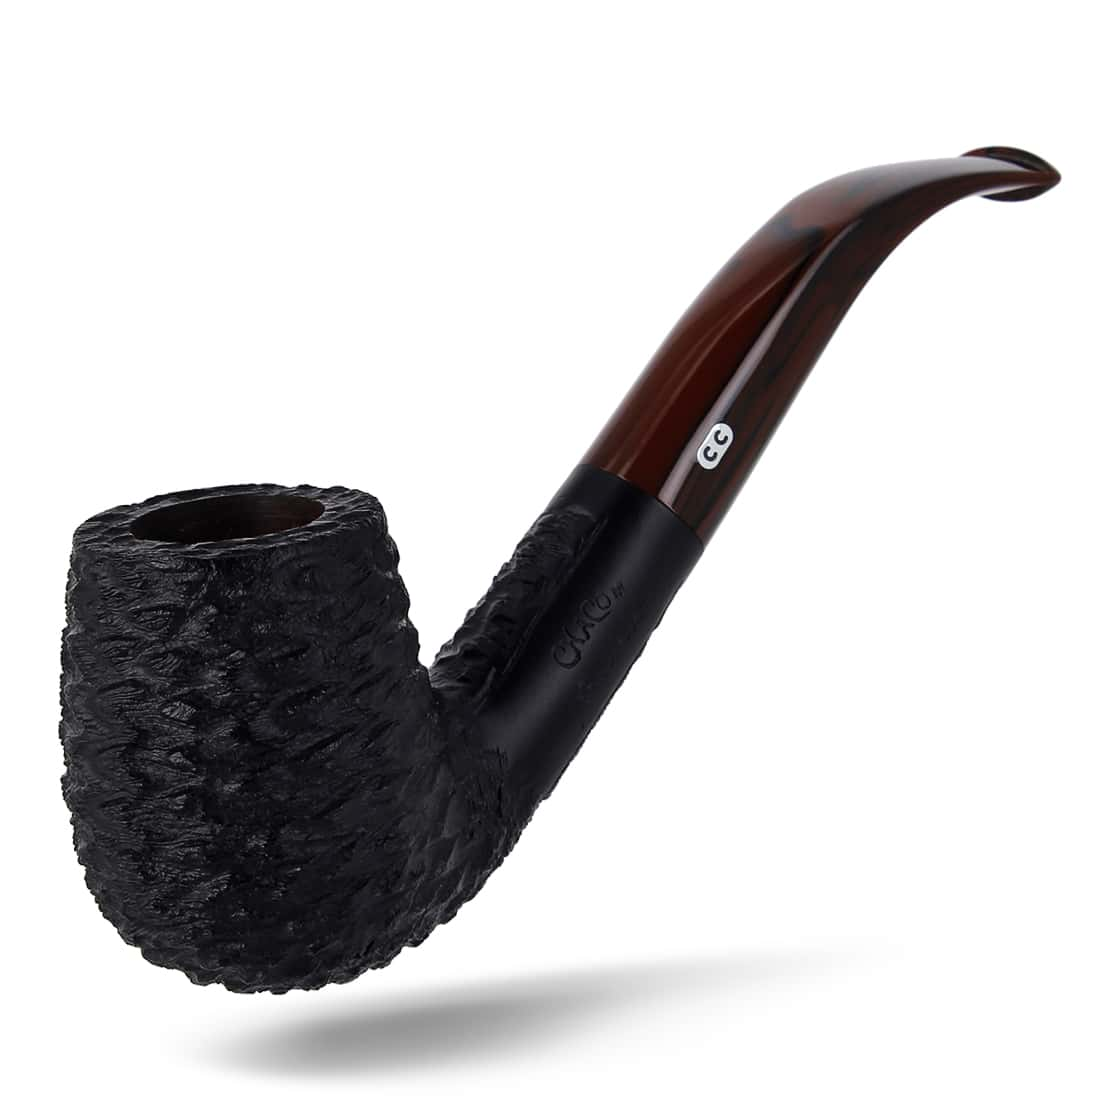 Photo #2 de Pipe Chacom Rustic 1202